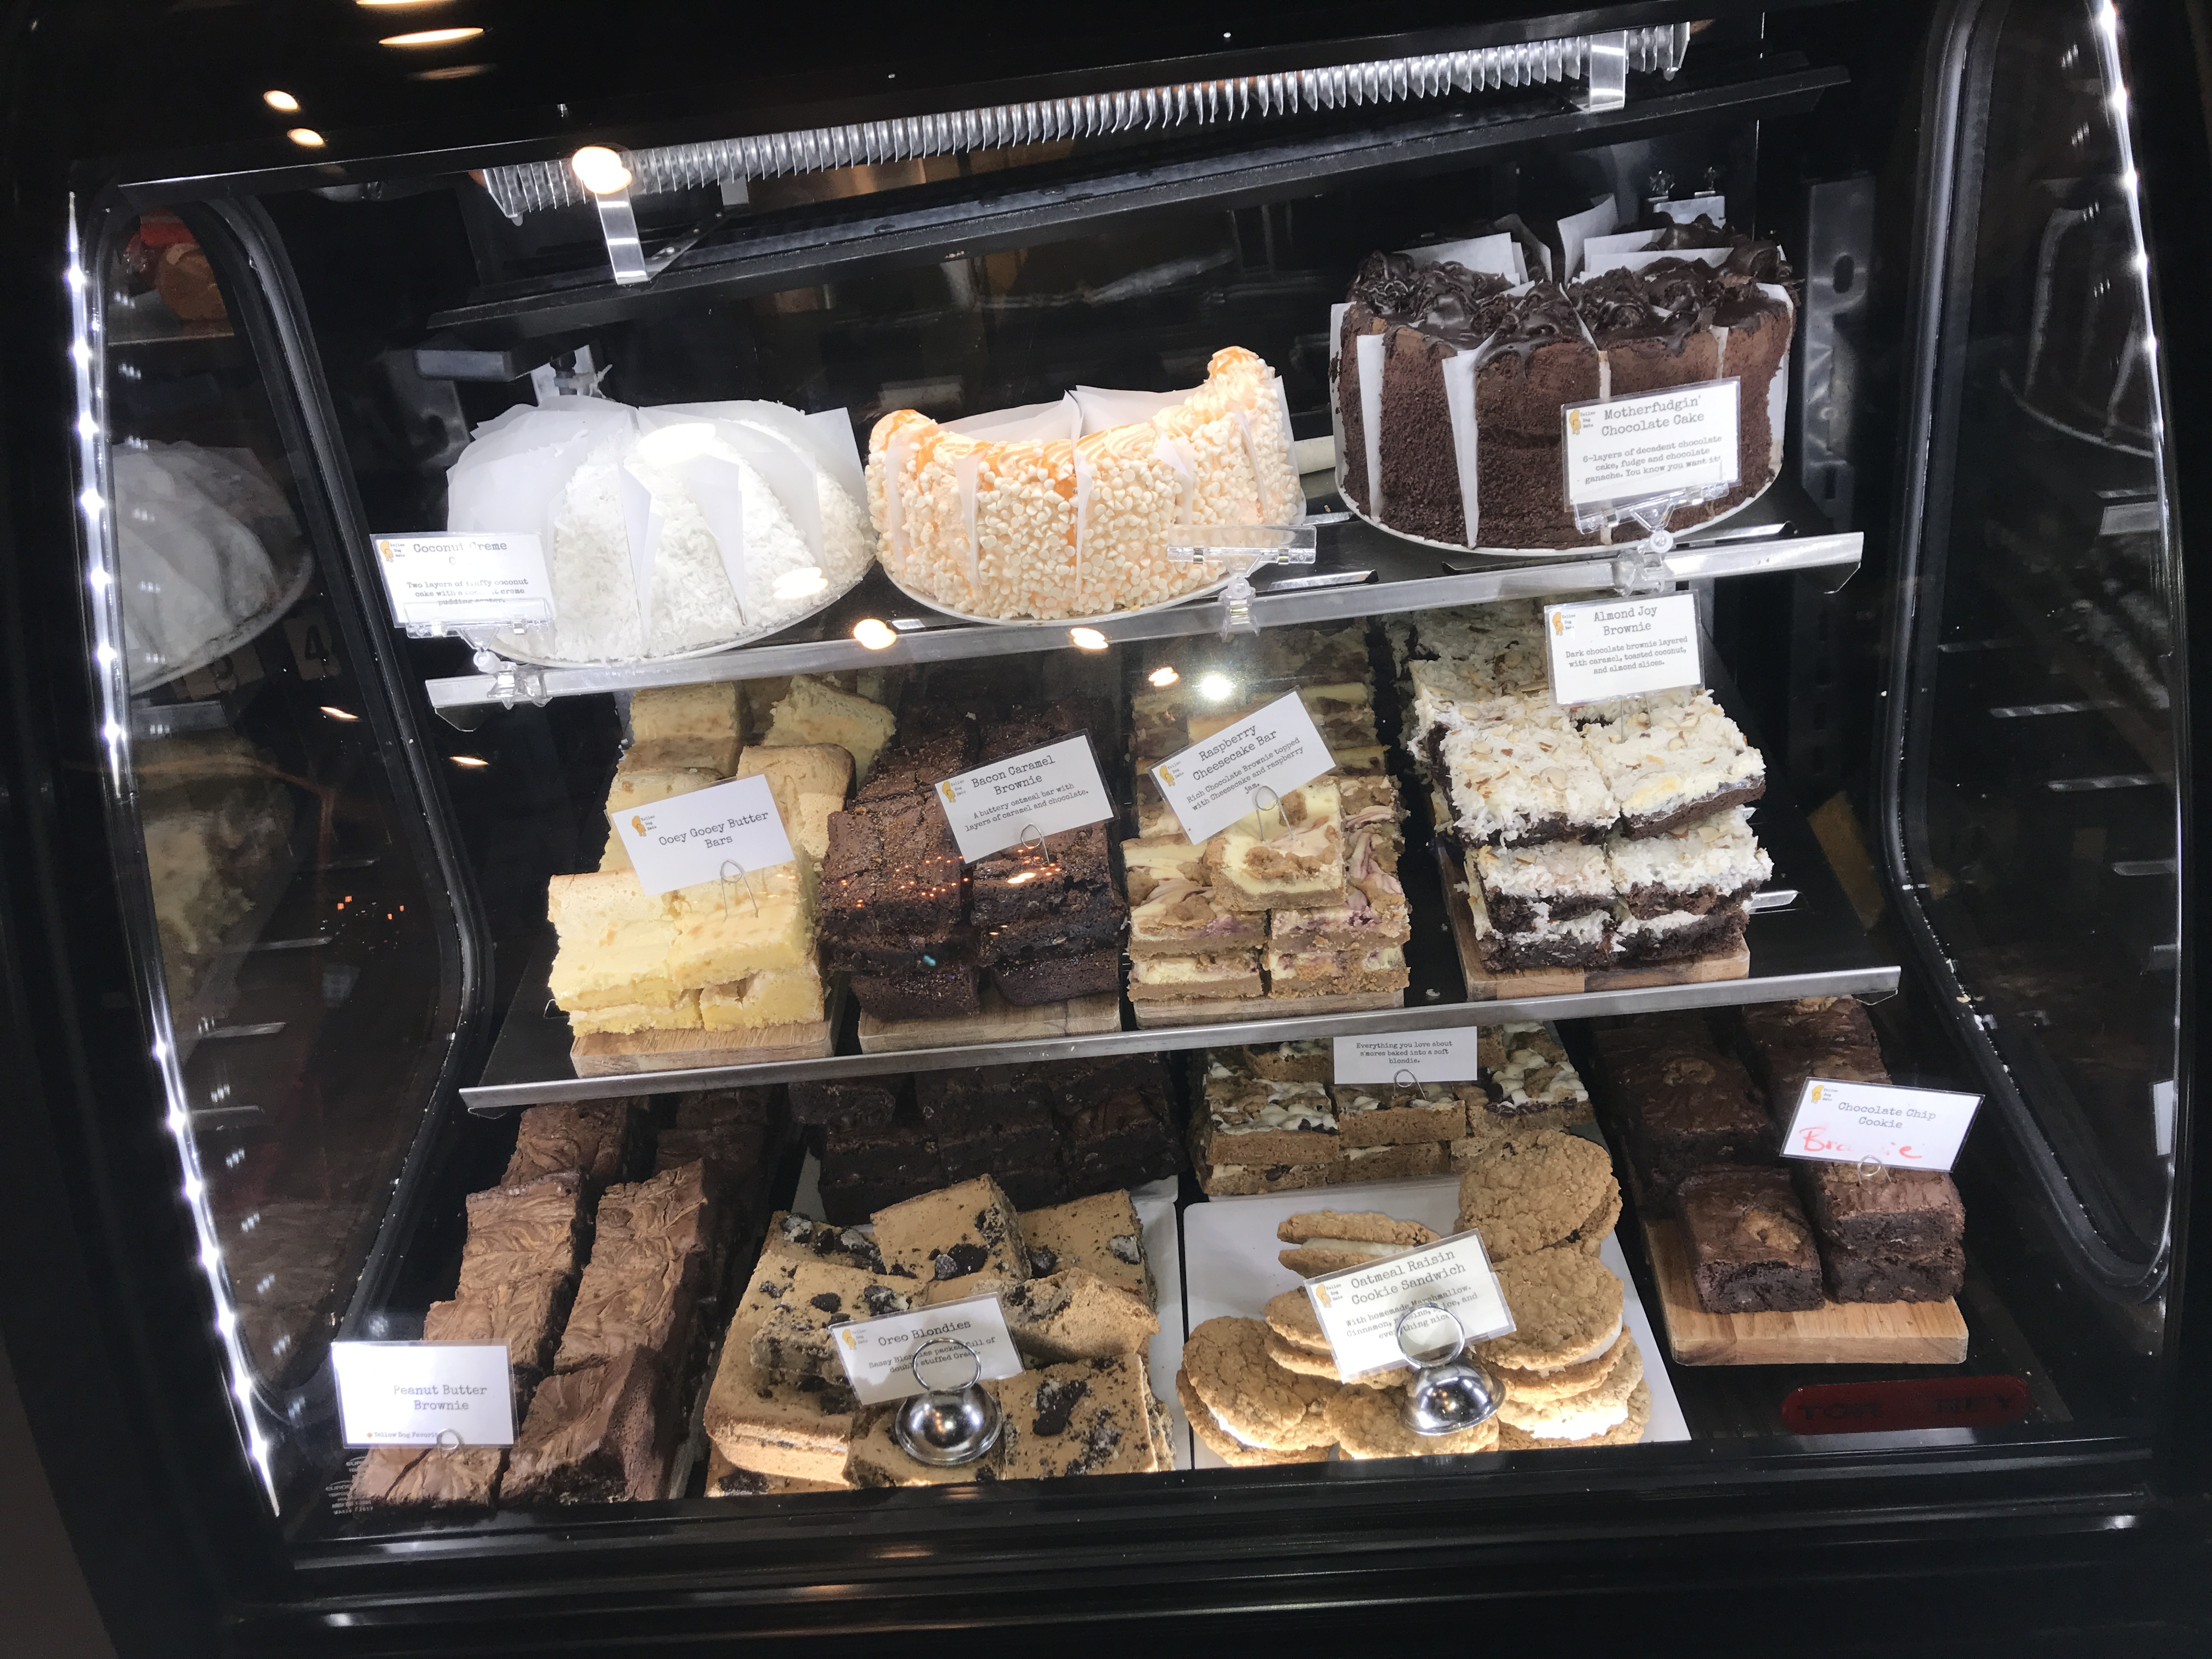 deli display filled with baked goods